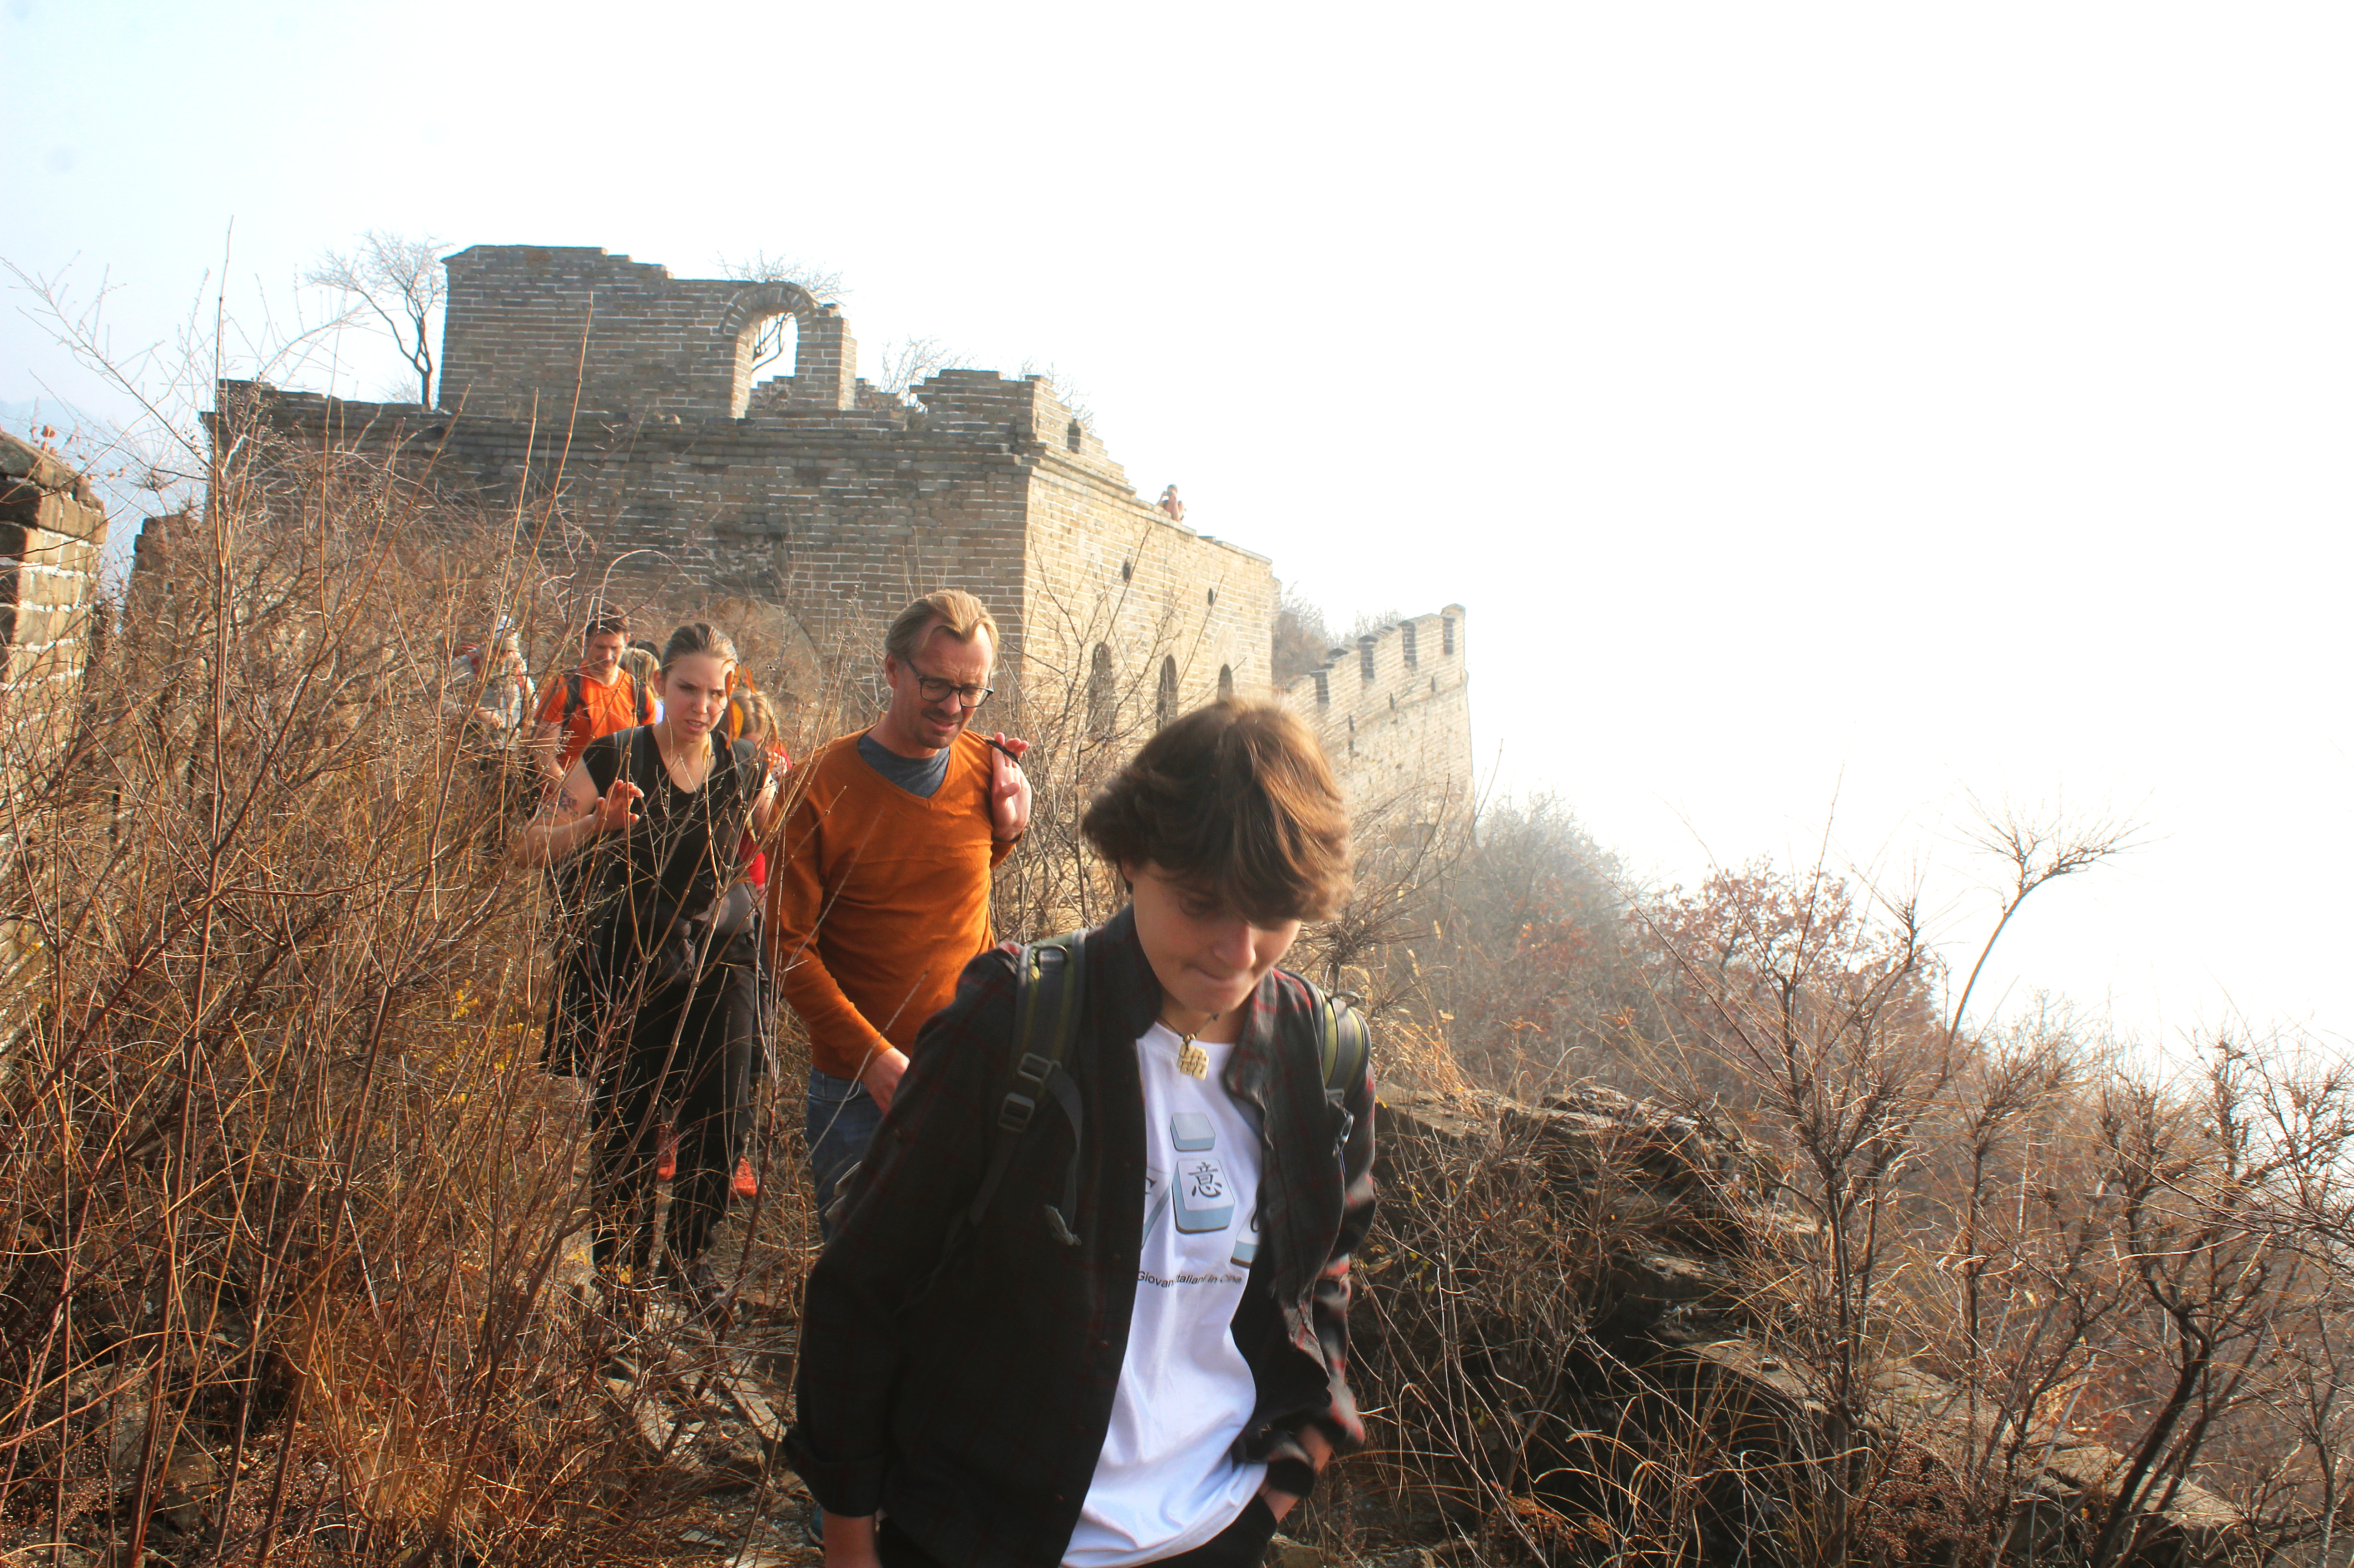 Chinese Knot Great Wall, 2018/11/03 photo #13